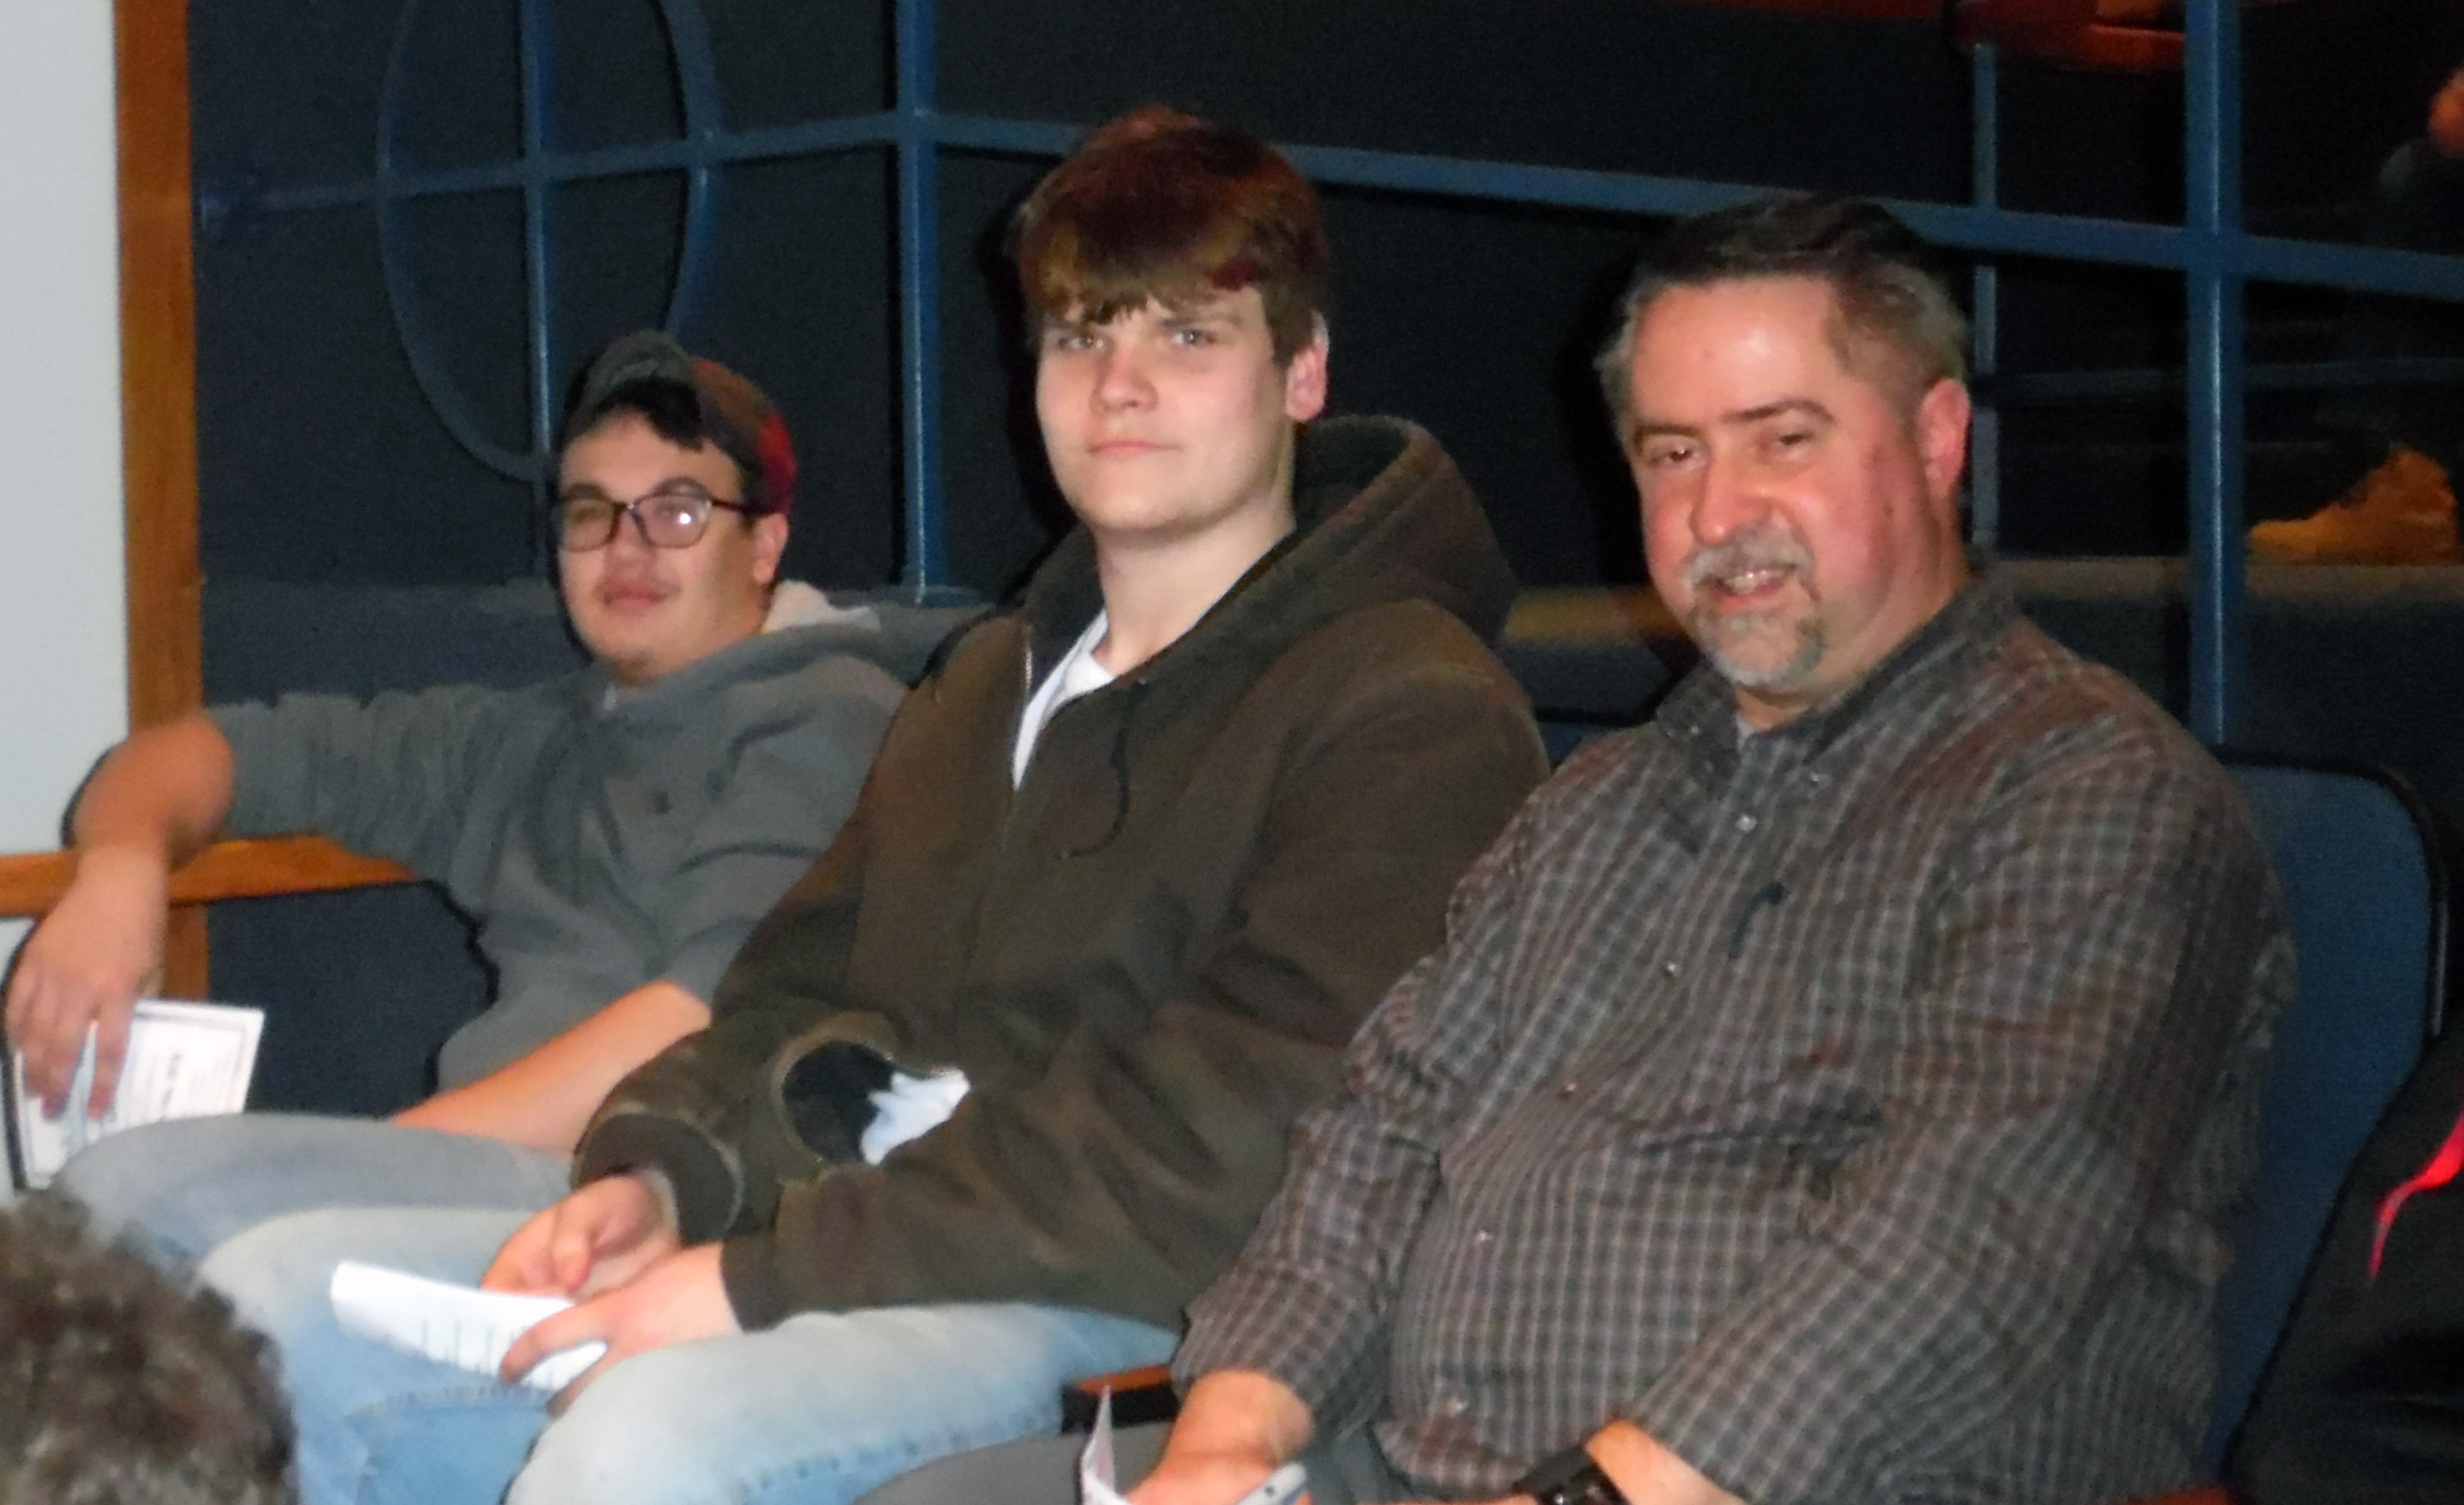 Sawyer, center, sits with two other in auditorium chairs.